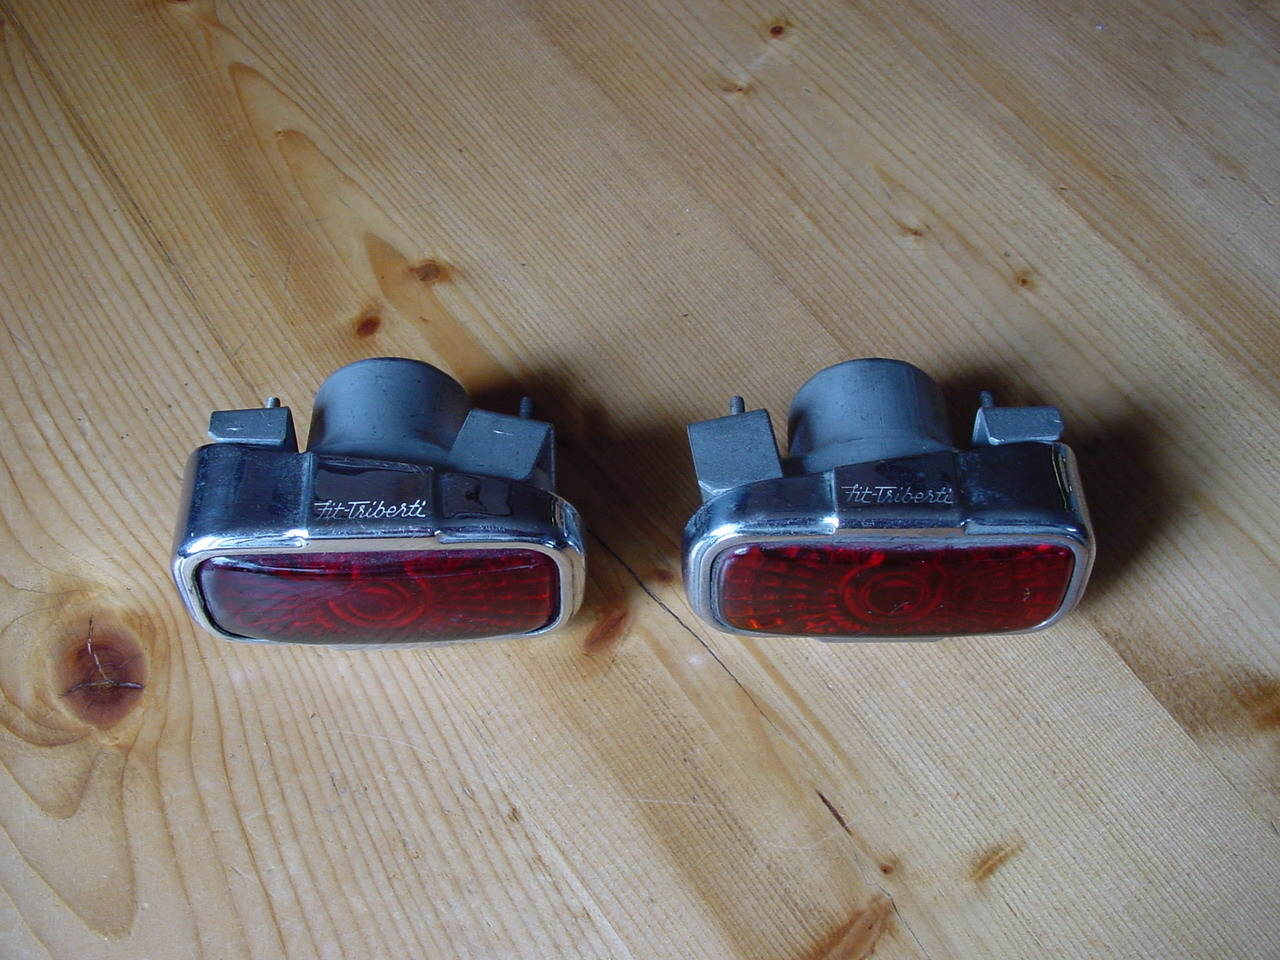 Triberti taillights with glass lenses